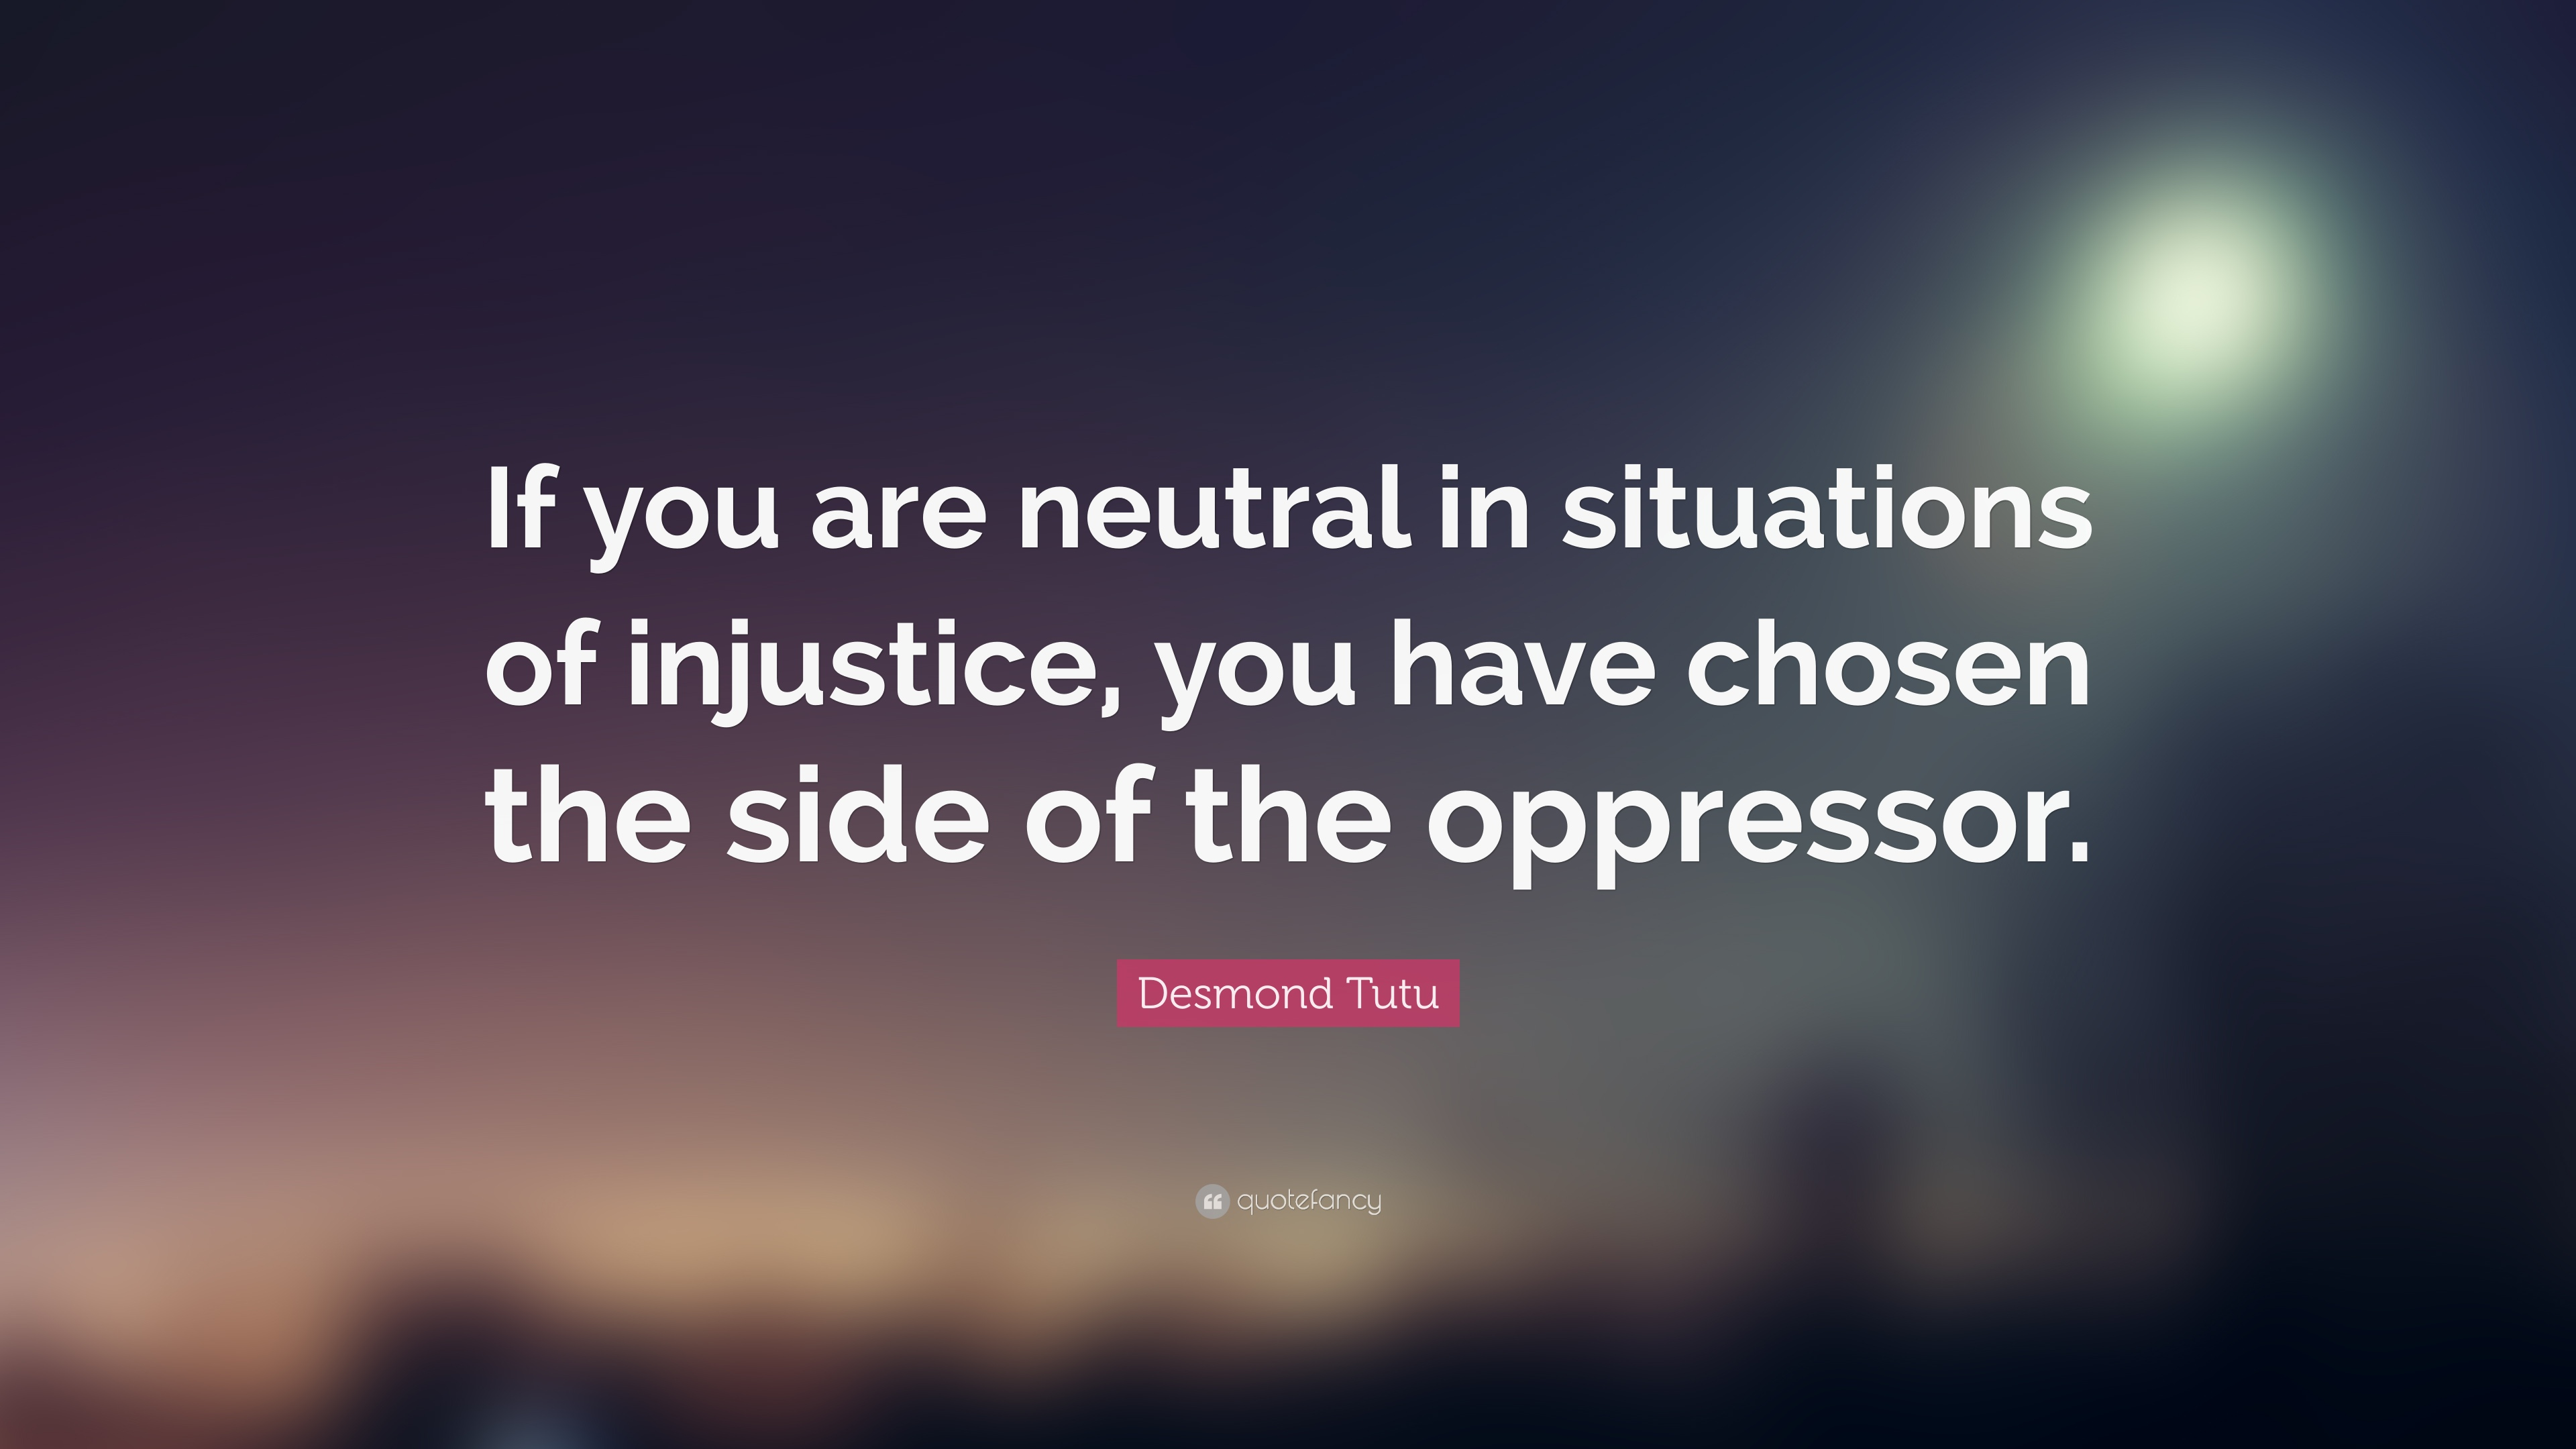 Motivational Wallpaper Cute Desmond Tutu Quote If You Are Neutral In Situations Of